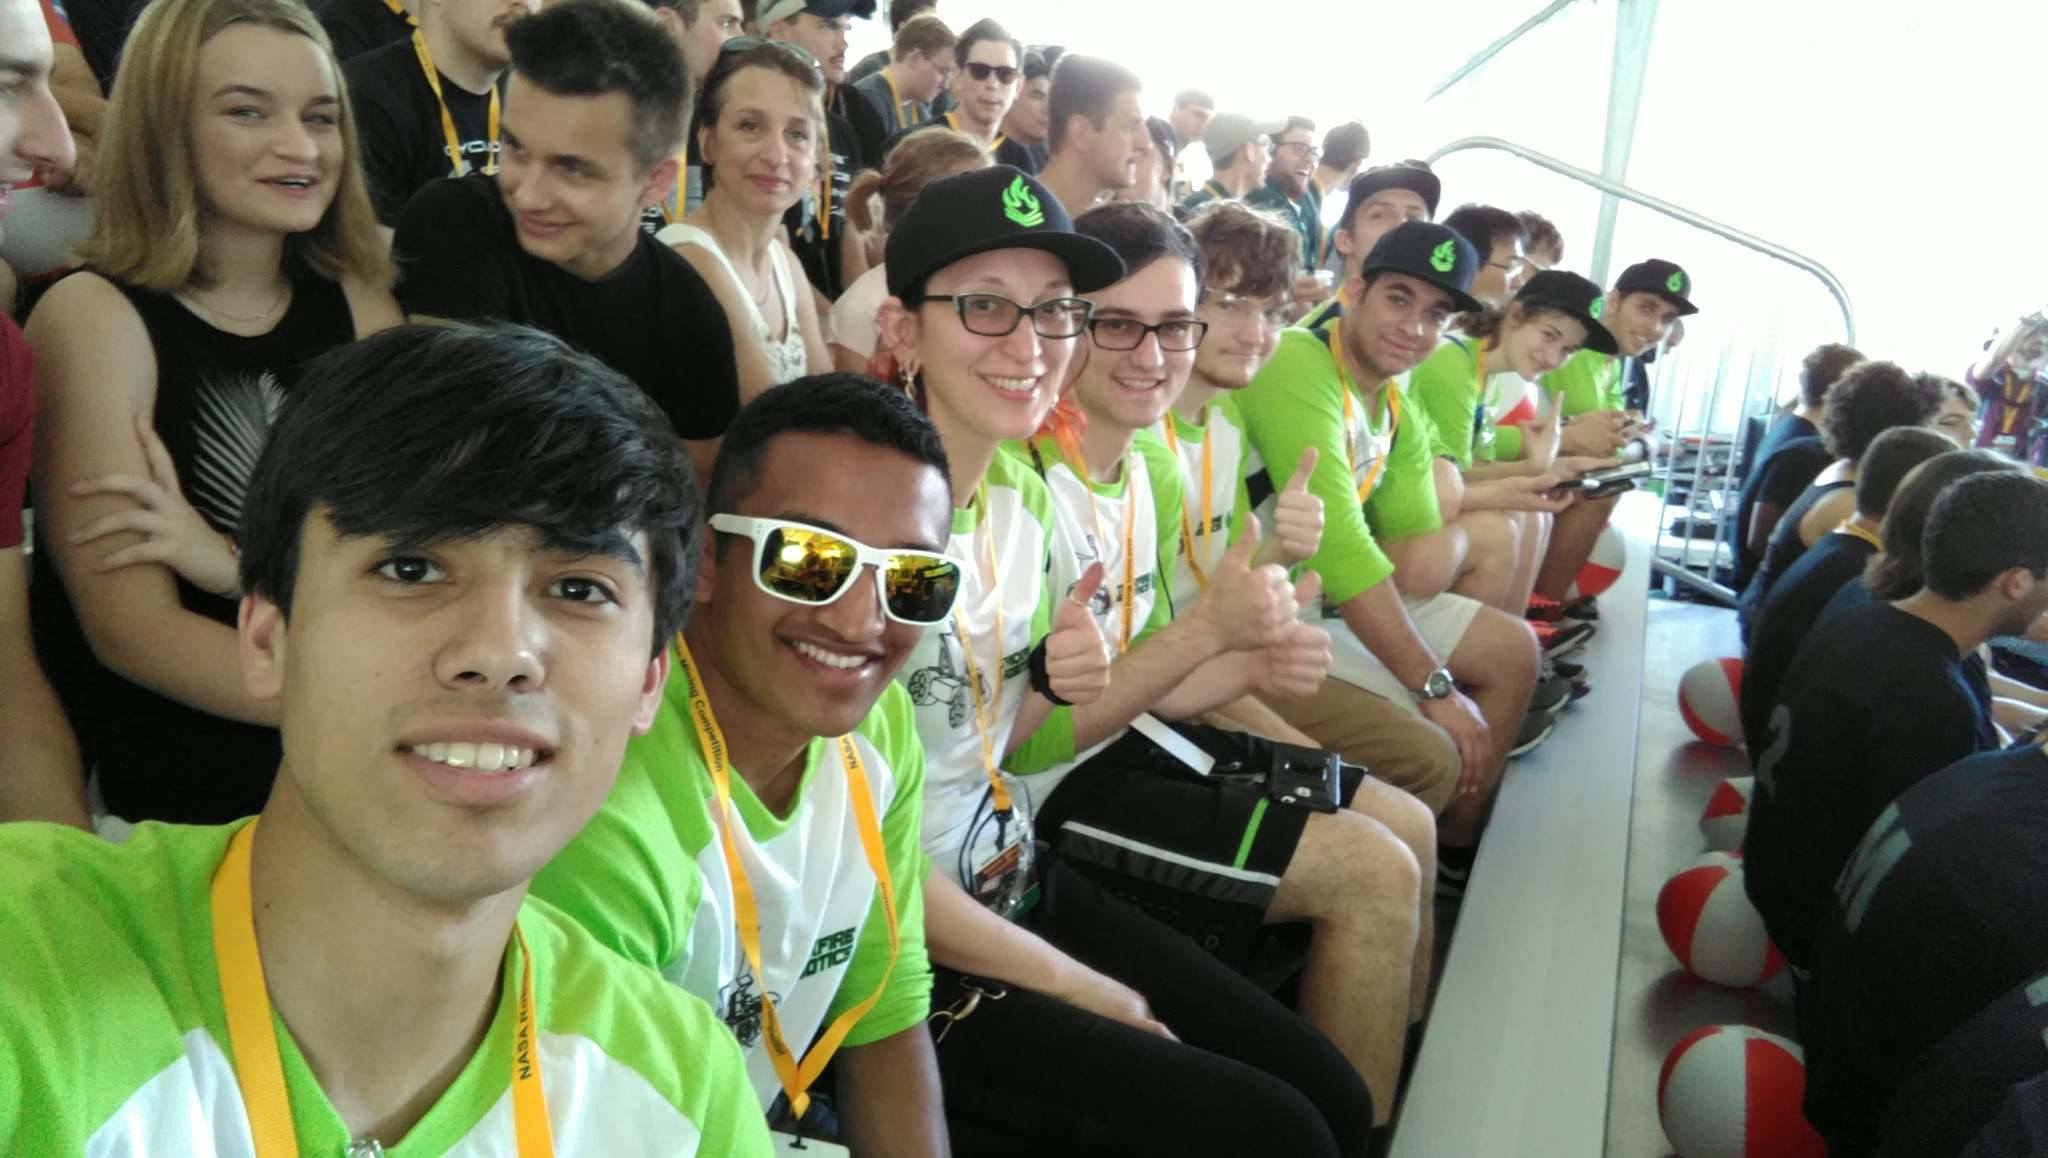 Ready for opening ceremonies!